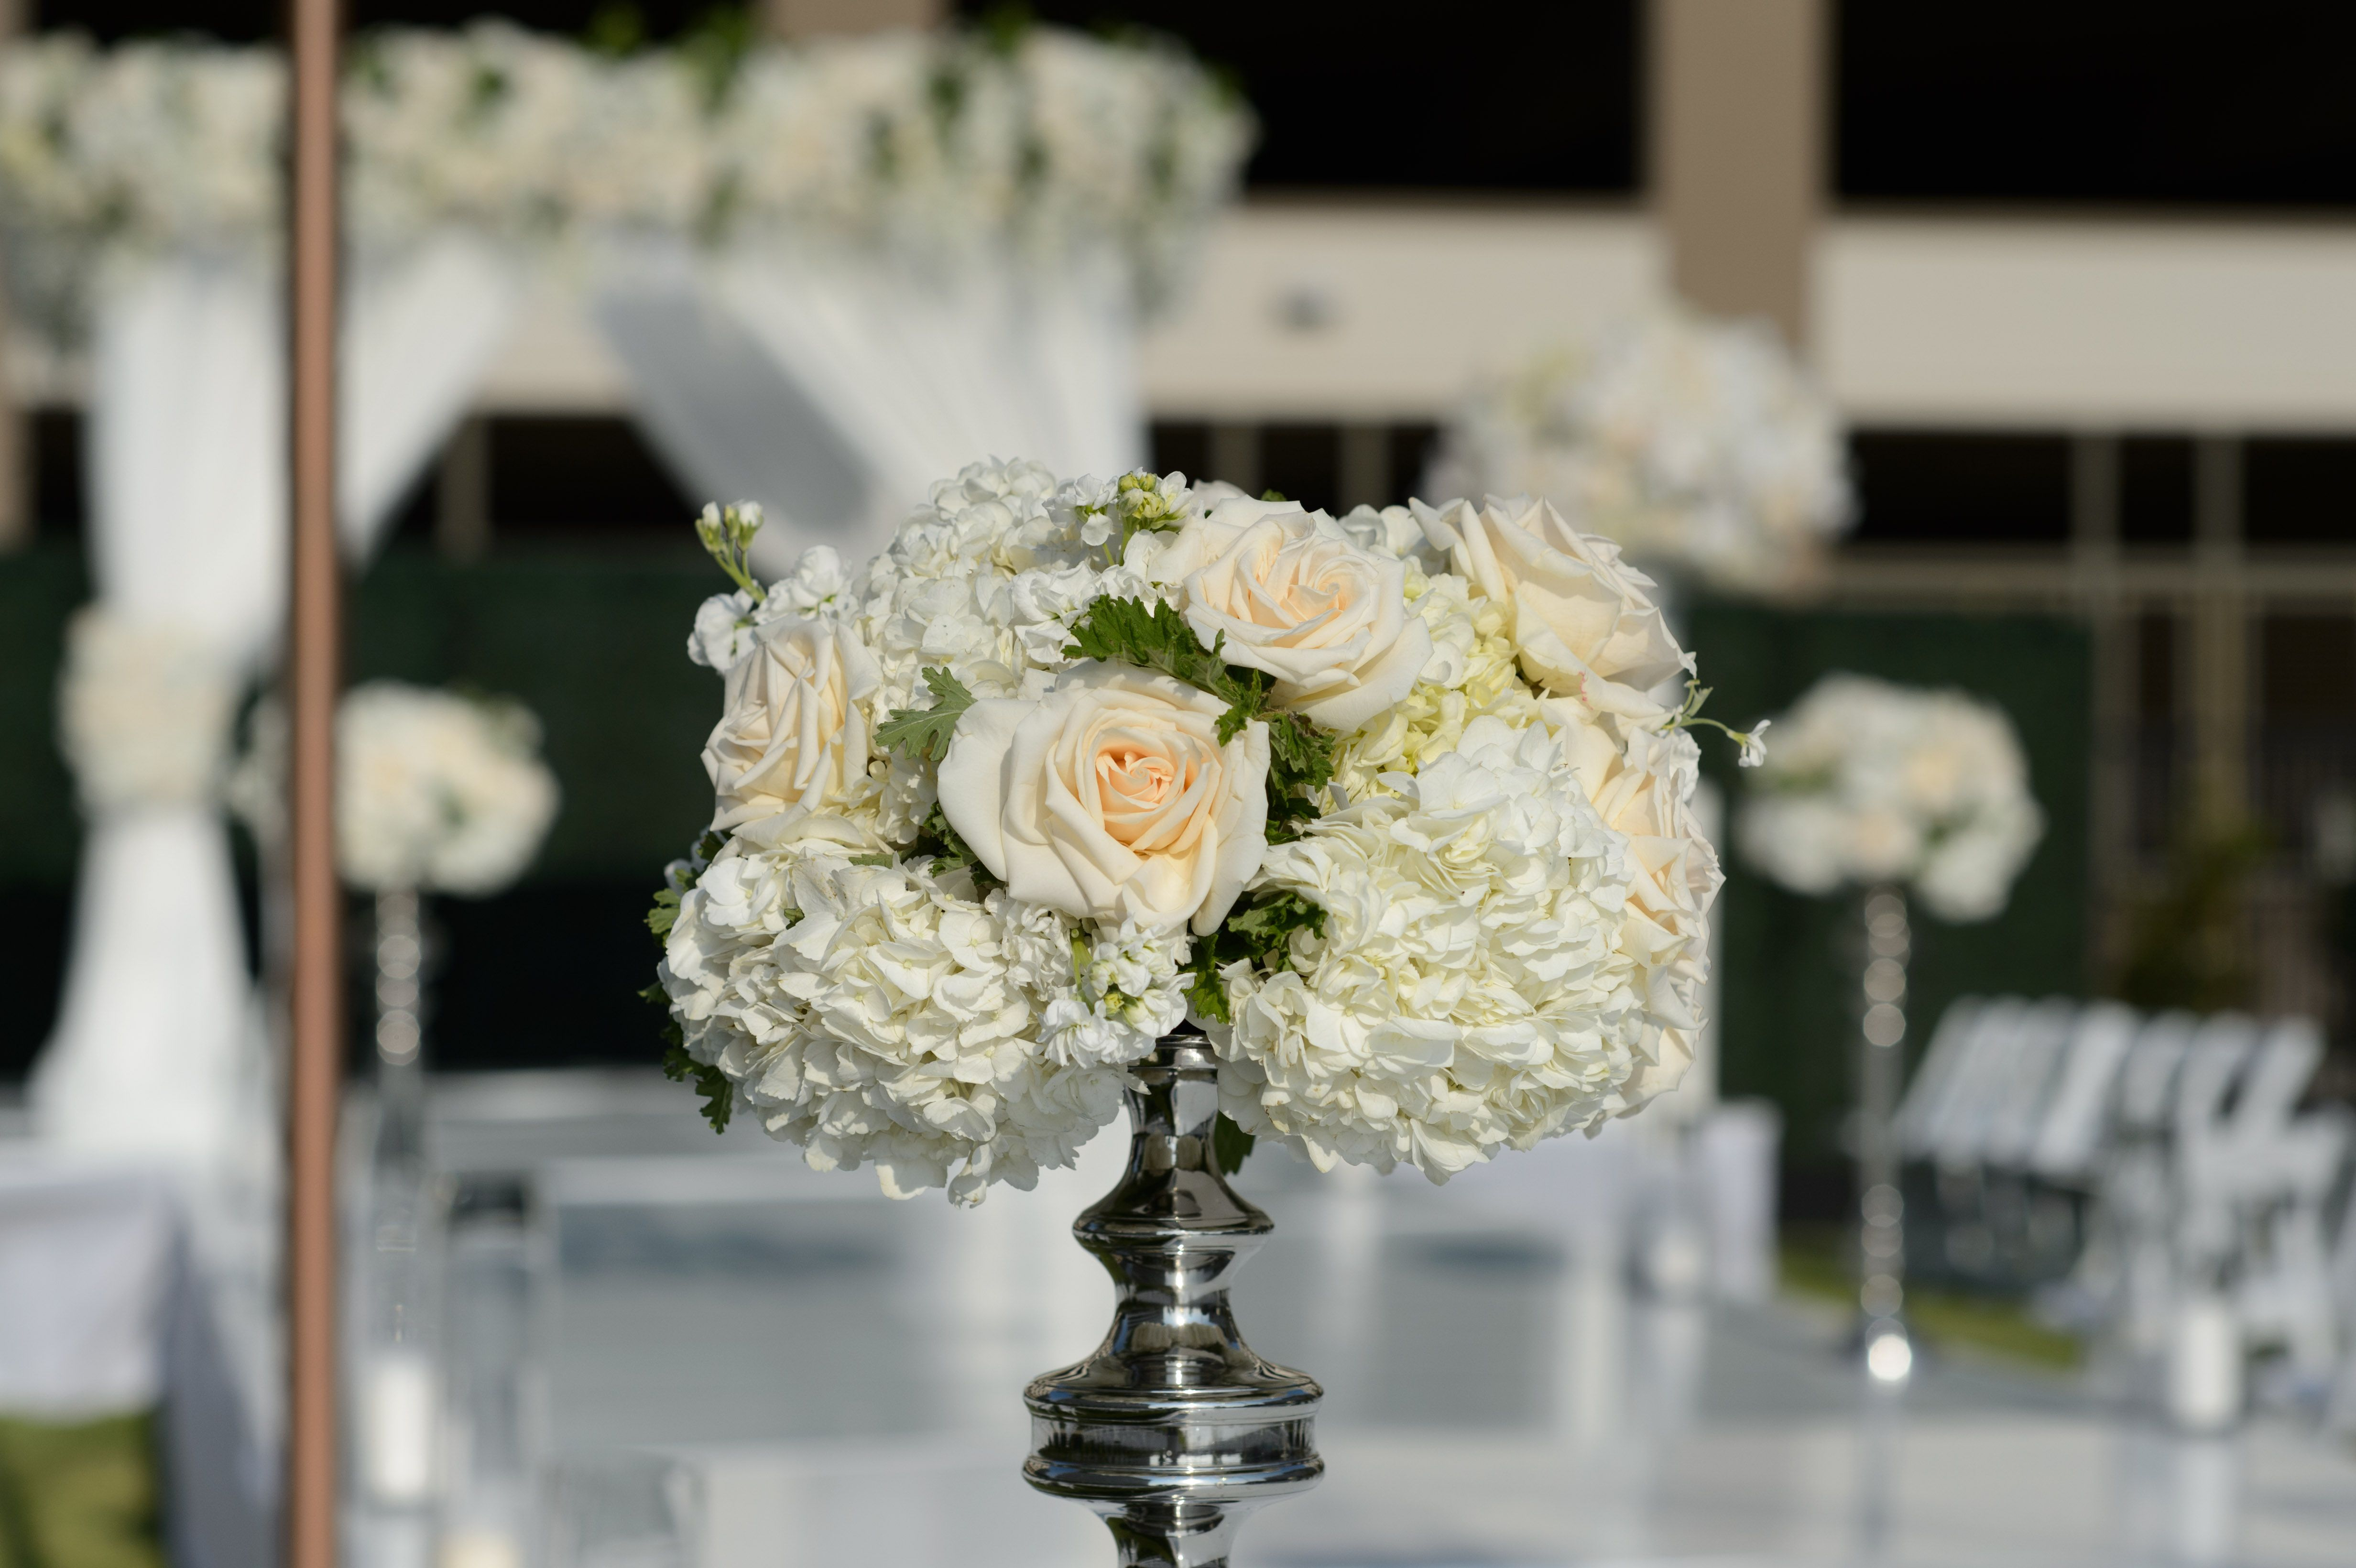 Outdoor wedding ceremony flowers on our event lawns